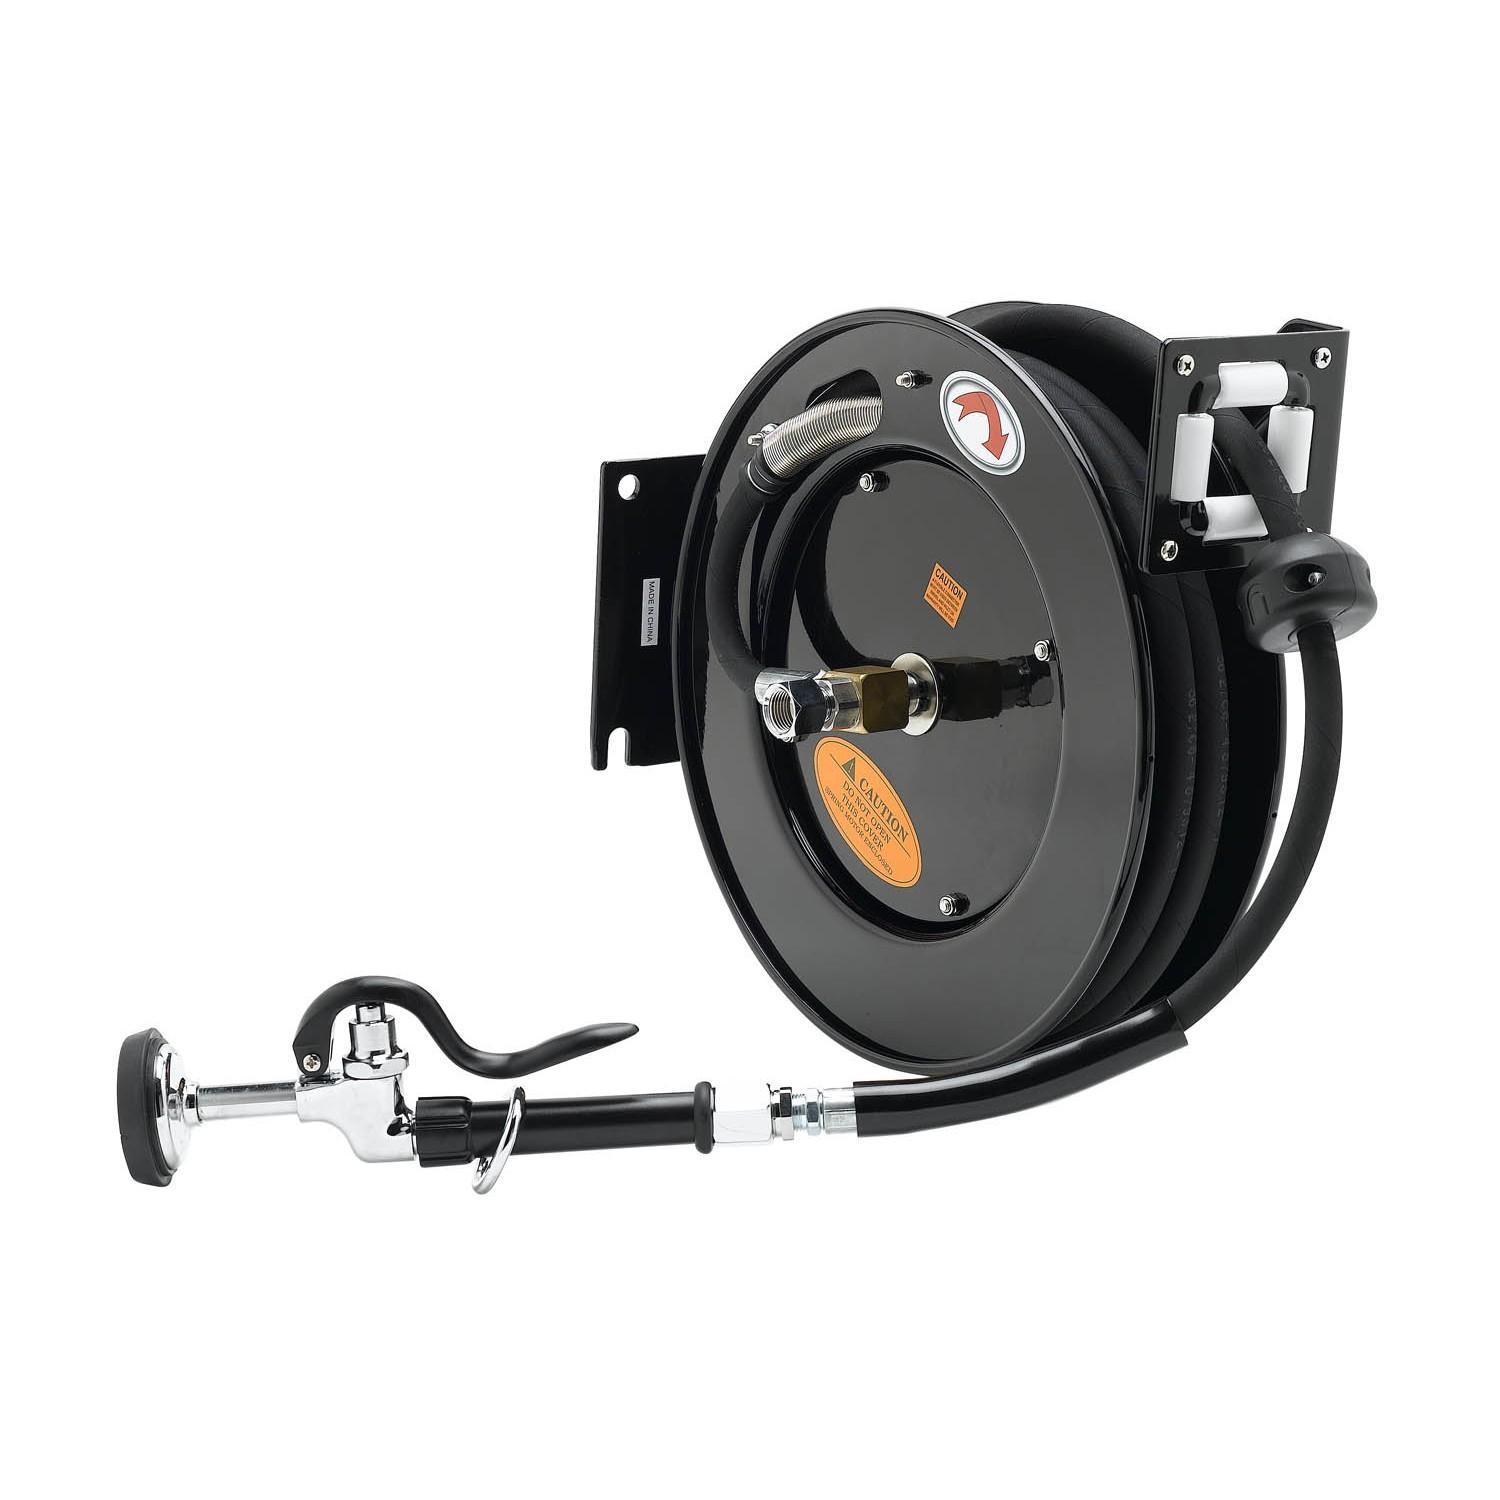 "T&S BRASS HOSE REEL, OPEN, POWDER COATED STEEL, 50^ X 3/8"" ID HOSE W/ SPRAY VALVE & REDUCING ADAPTER"